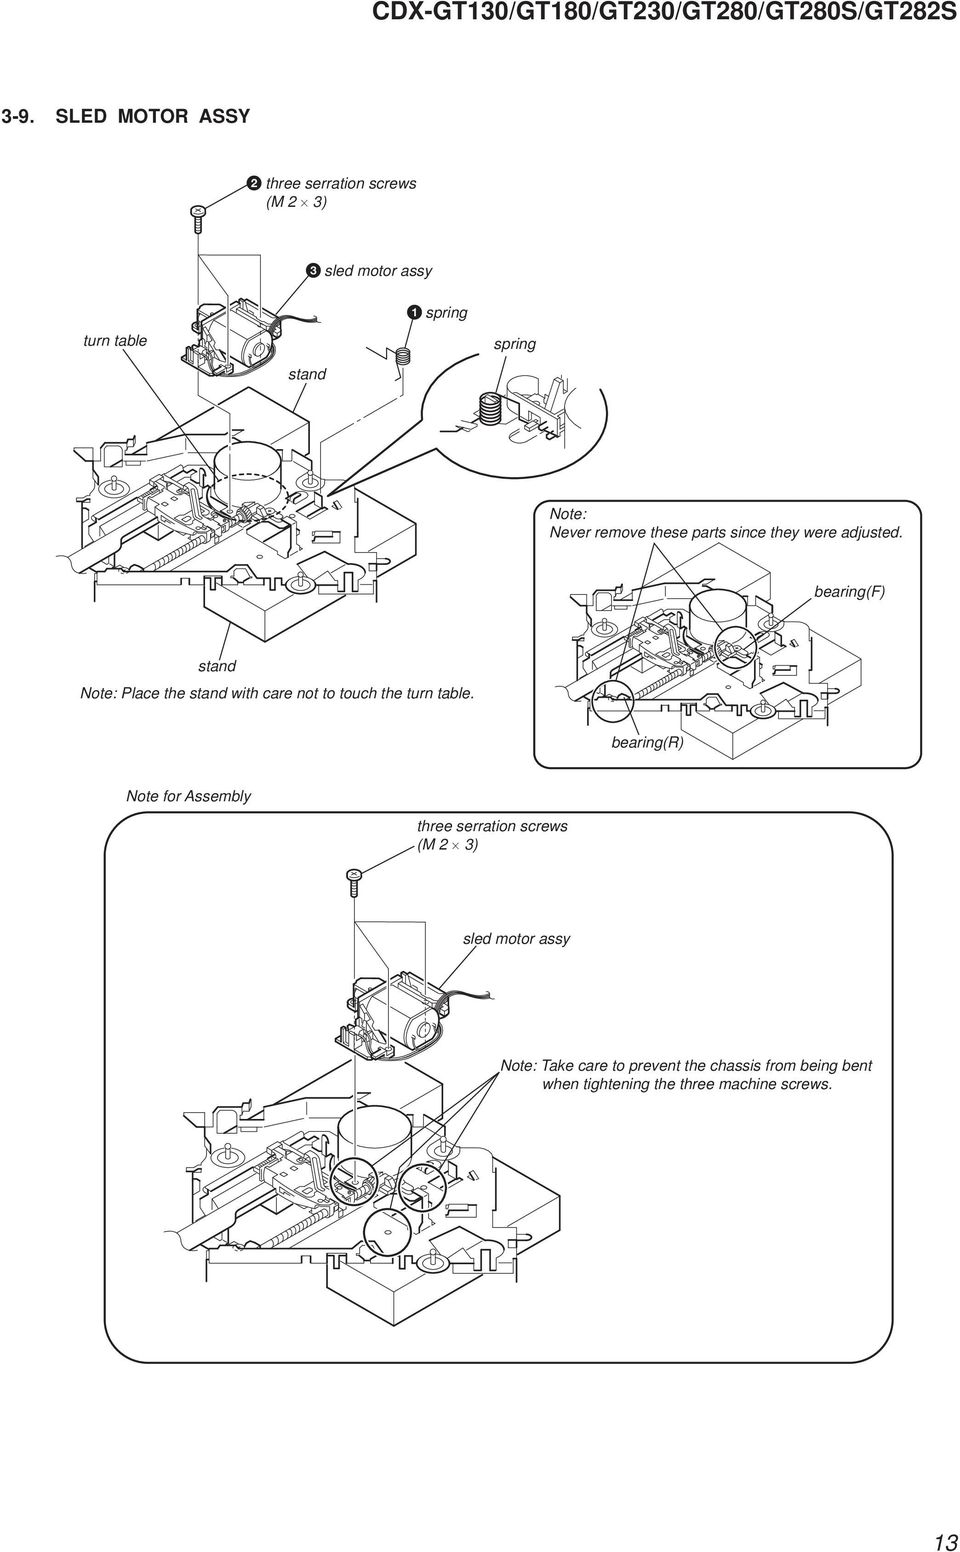 Photo Cdx Gt130 Specifications Pdf Sony Wiring Diagram Get Free Image About Bearingf Stand Note Place The With Care Not To Touch